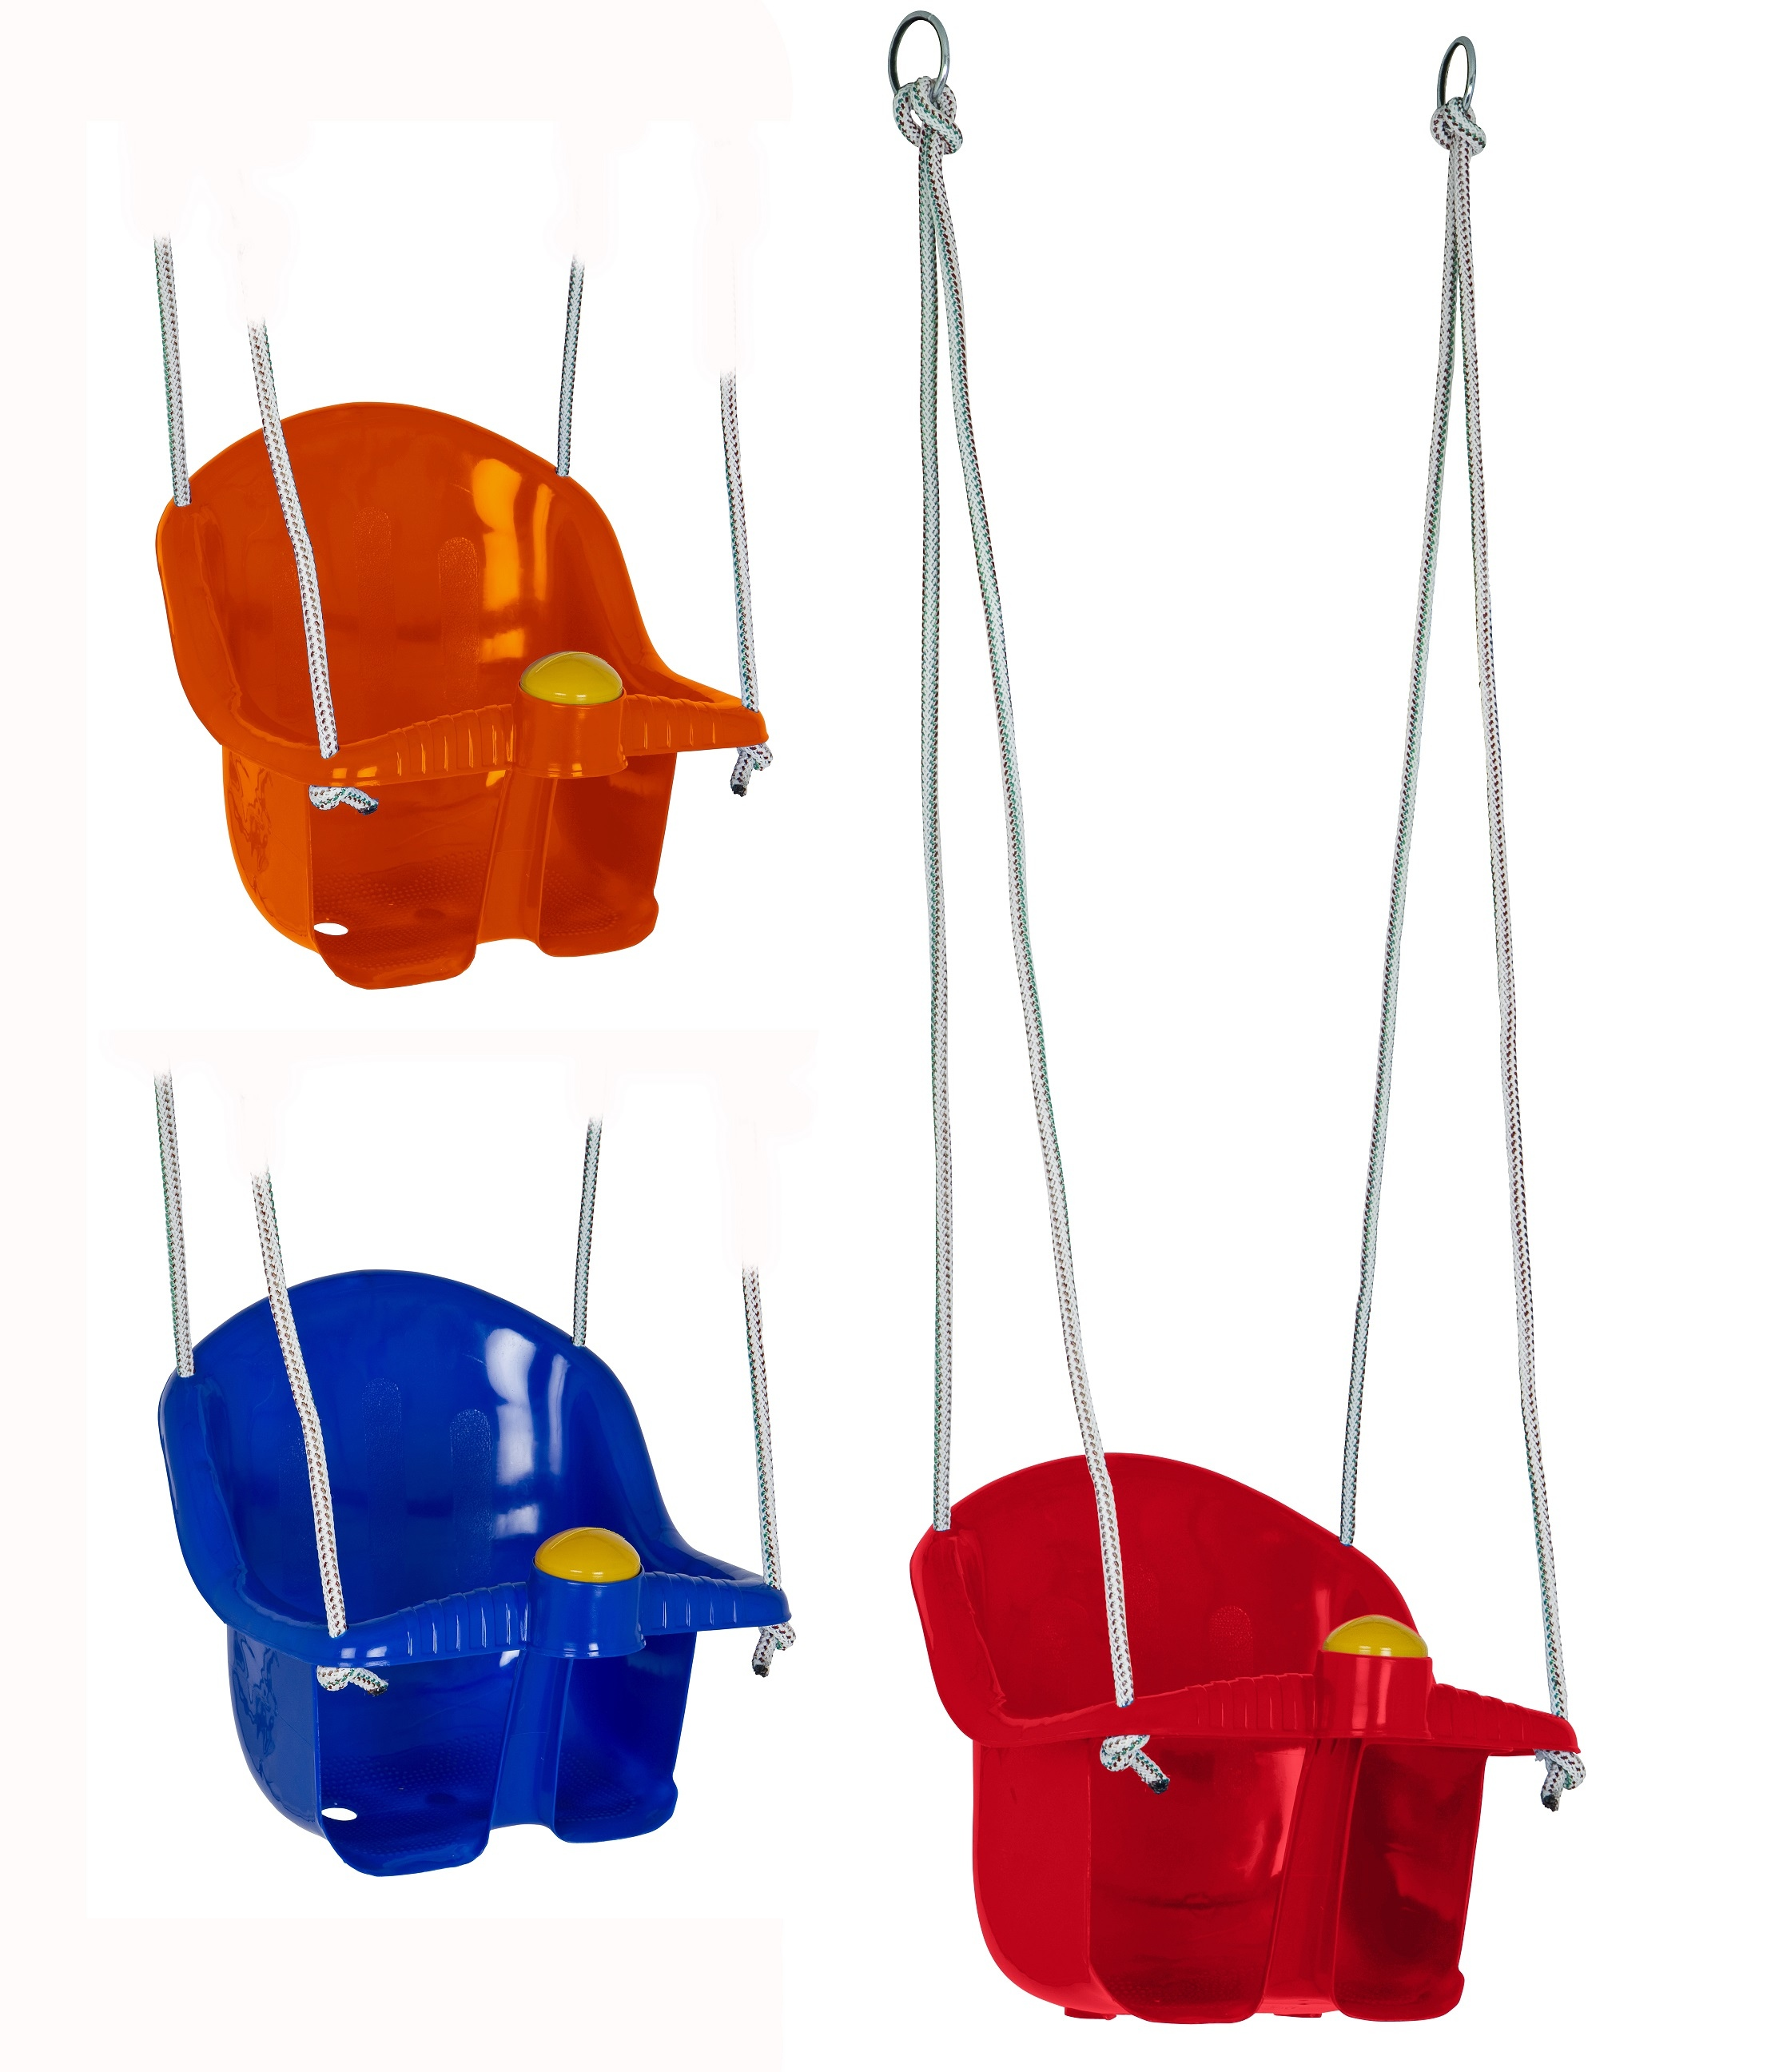 Childrens Plastic Swing Rope Seat With Rope & Mounting Rings Kids